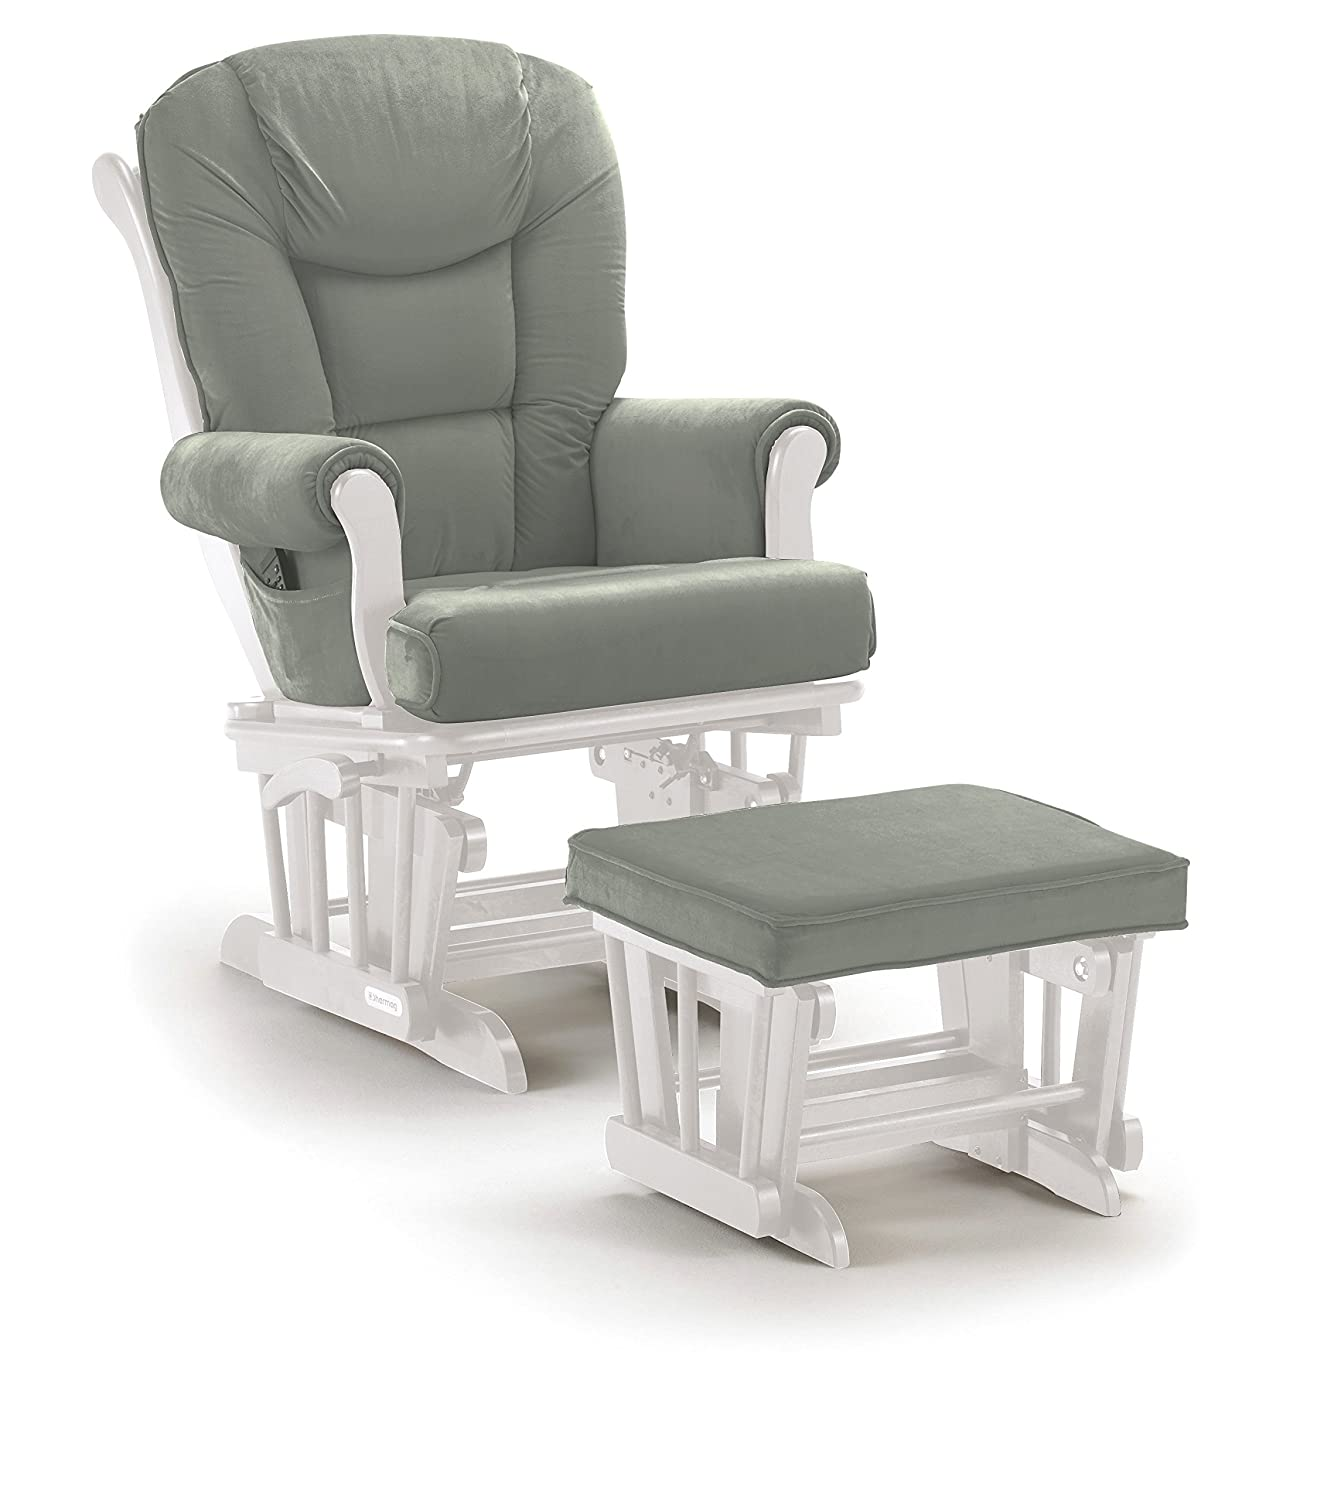 Shermag Glider Rocker Combo White with Grey  sc 1 st  Amazon.com & Amazon.com: Gliders Ottomans u0026 Rocking Chairs: Baby Products ...